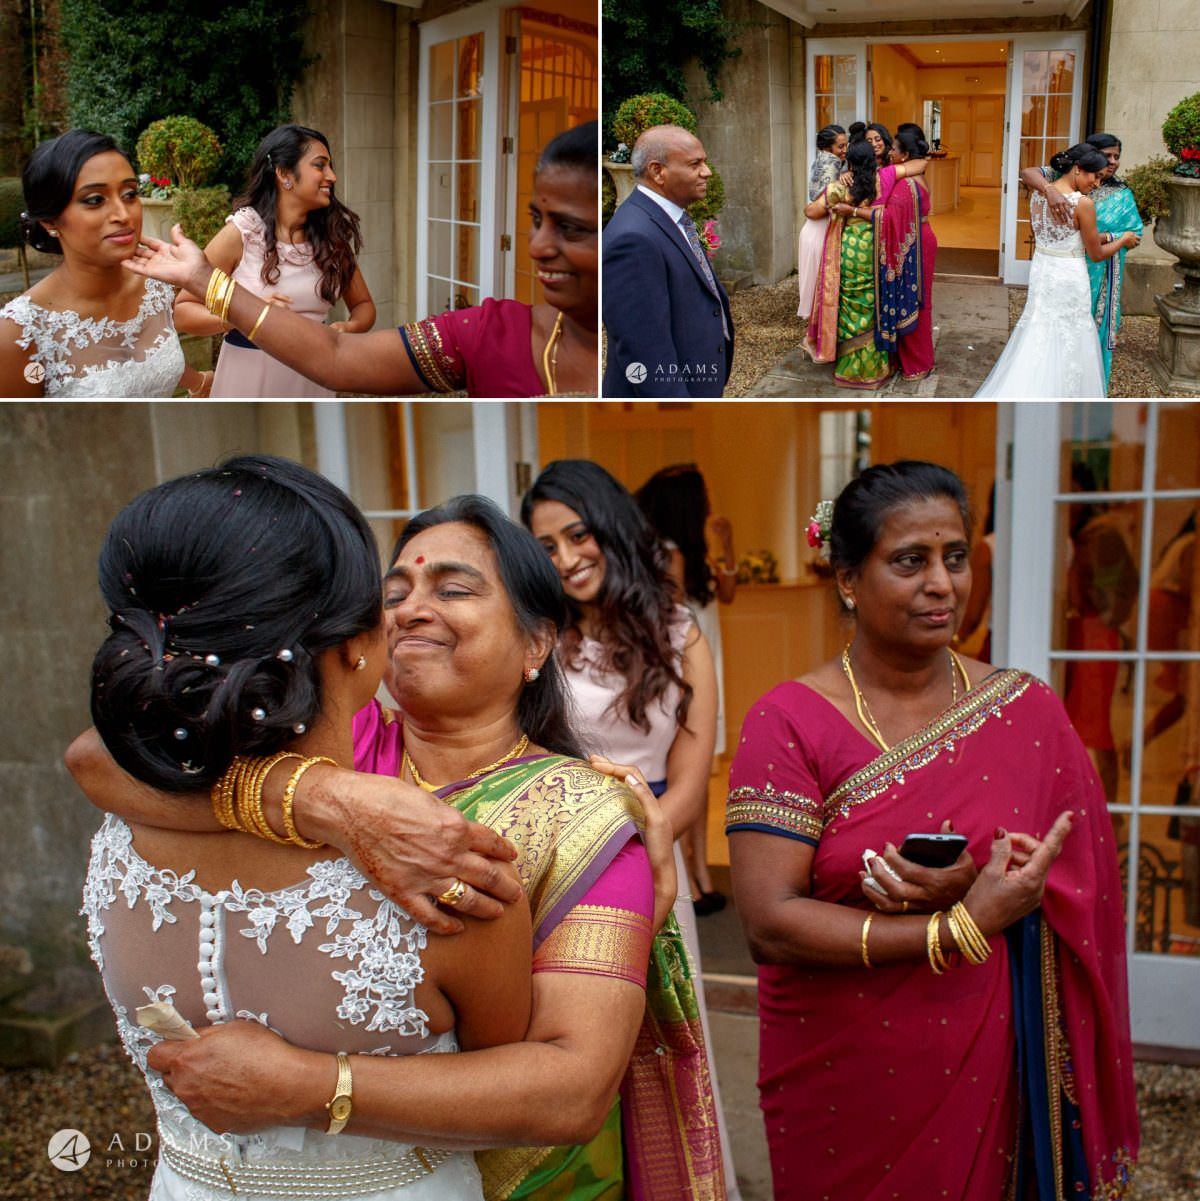 Northbrook Park Wedding Photography | Twa + Len 20